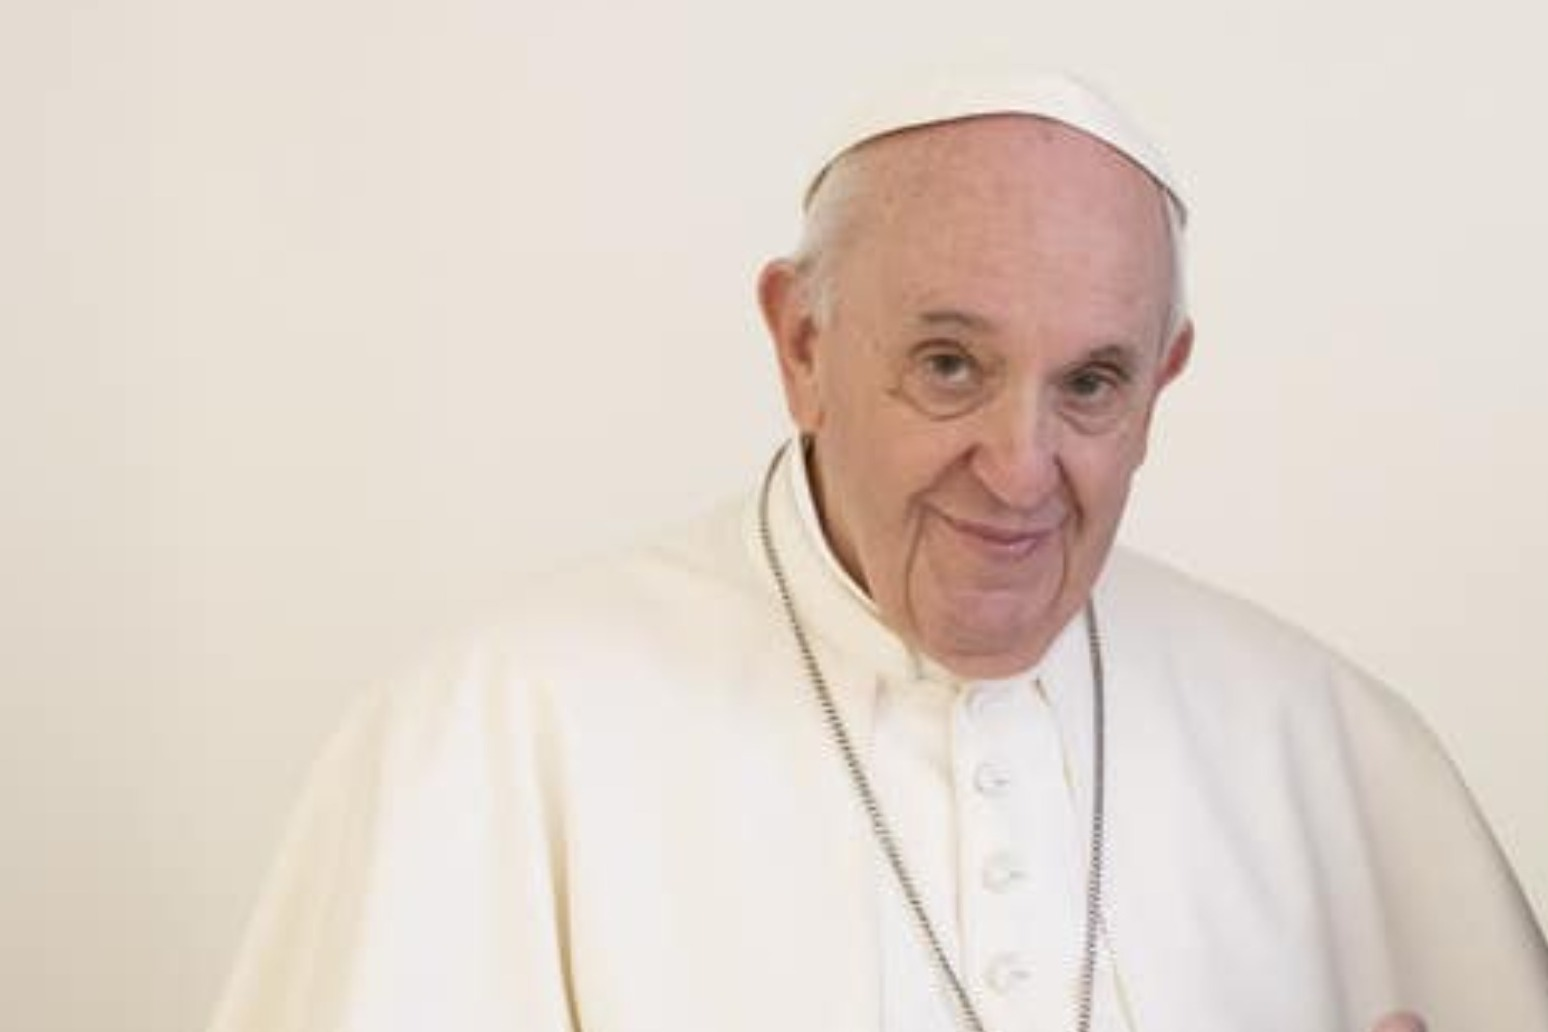 Pope sends message of 'closeness and blessing' to families of Plymouth victims